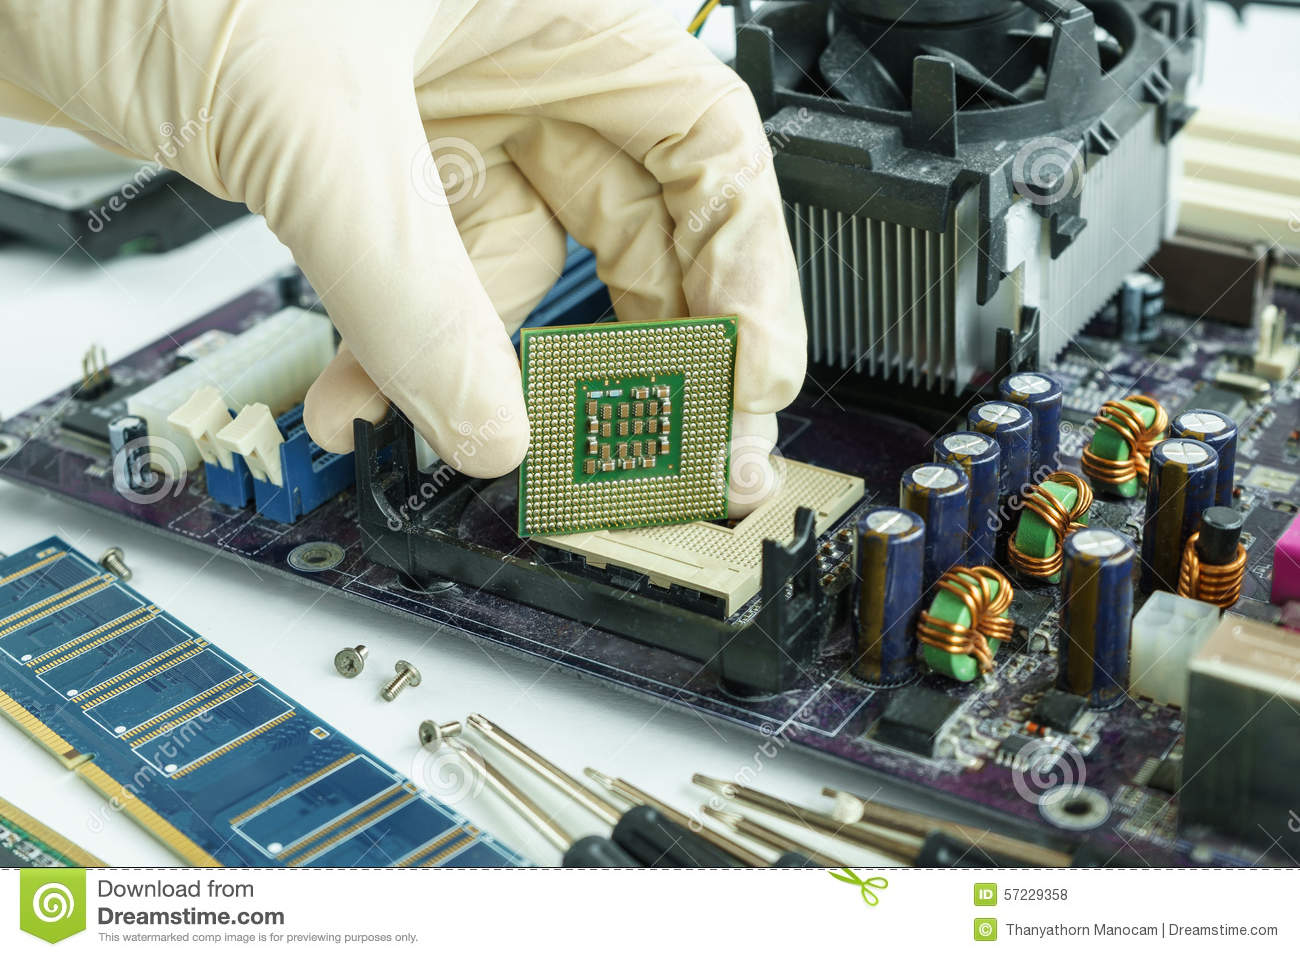 Remove Cpu From Main Circuit Board To Check Stock Photo Image Of Repair Electronic Royalty Free Images